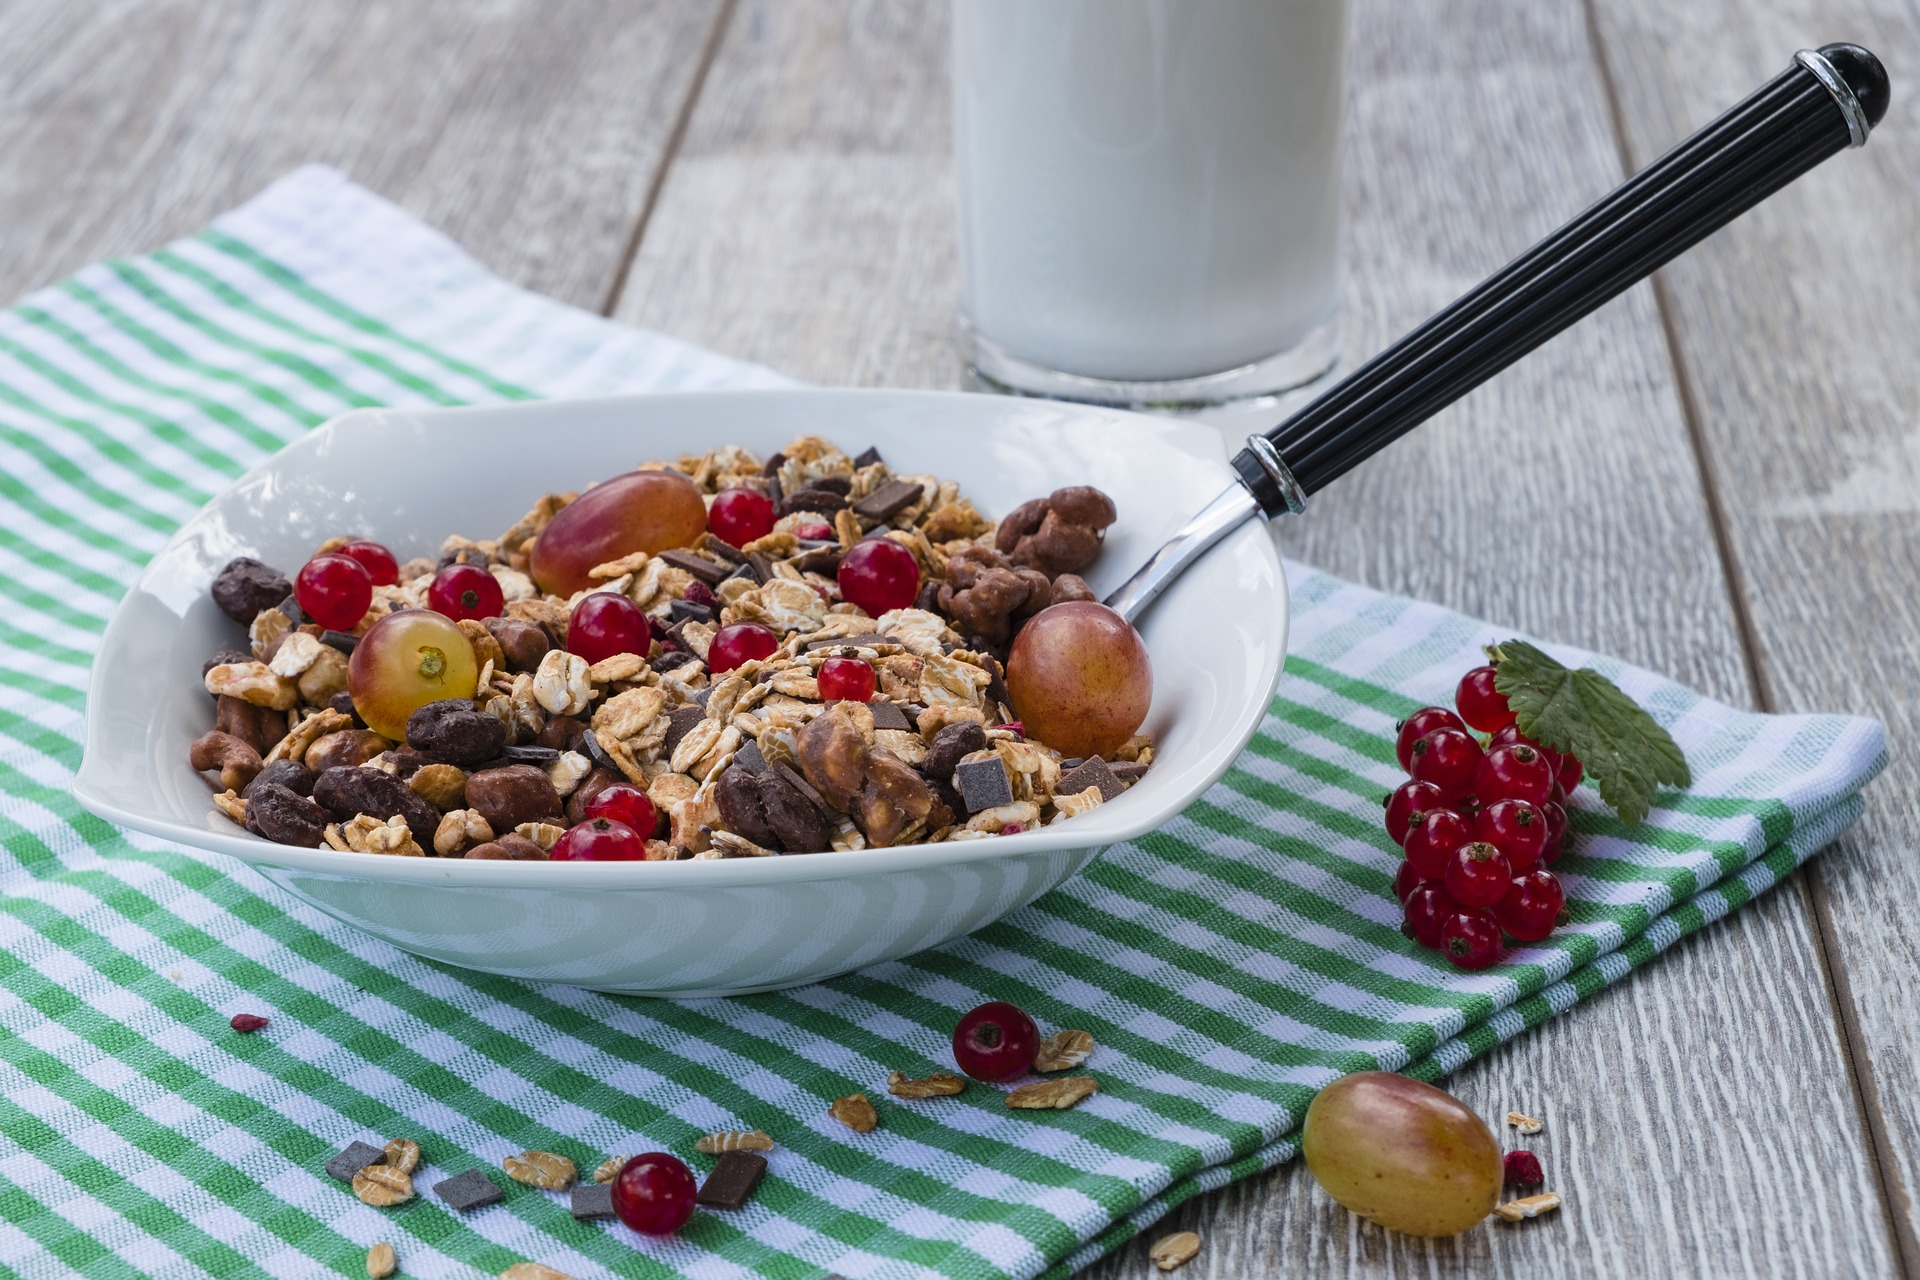 EARLY BIRD - Breakfast is served! Our unique blend of fun foods created on the daily, can get your fuel line all jazzed up with the necessary morning boost your body craves and needs!